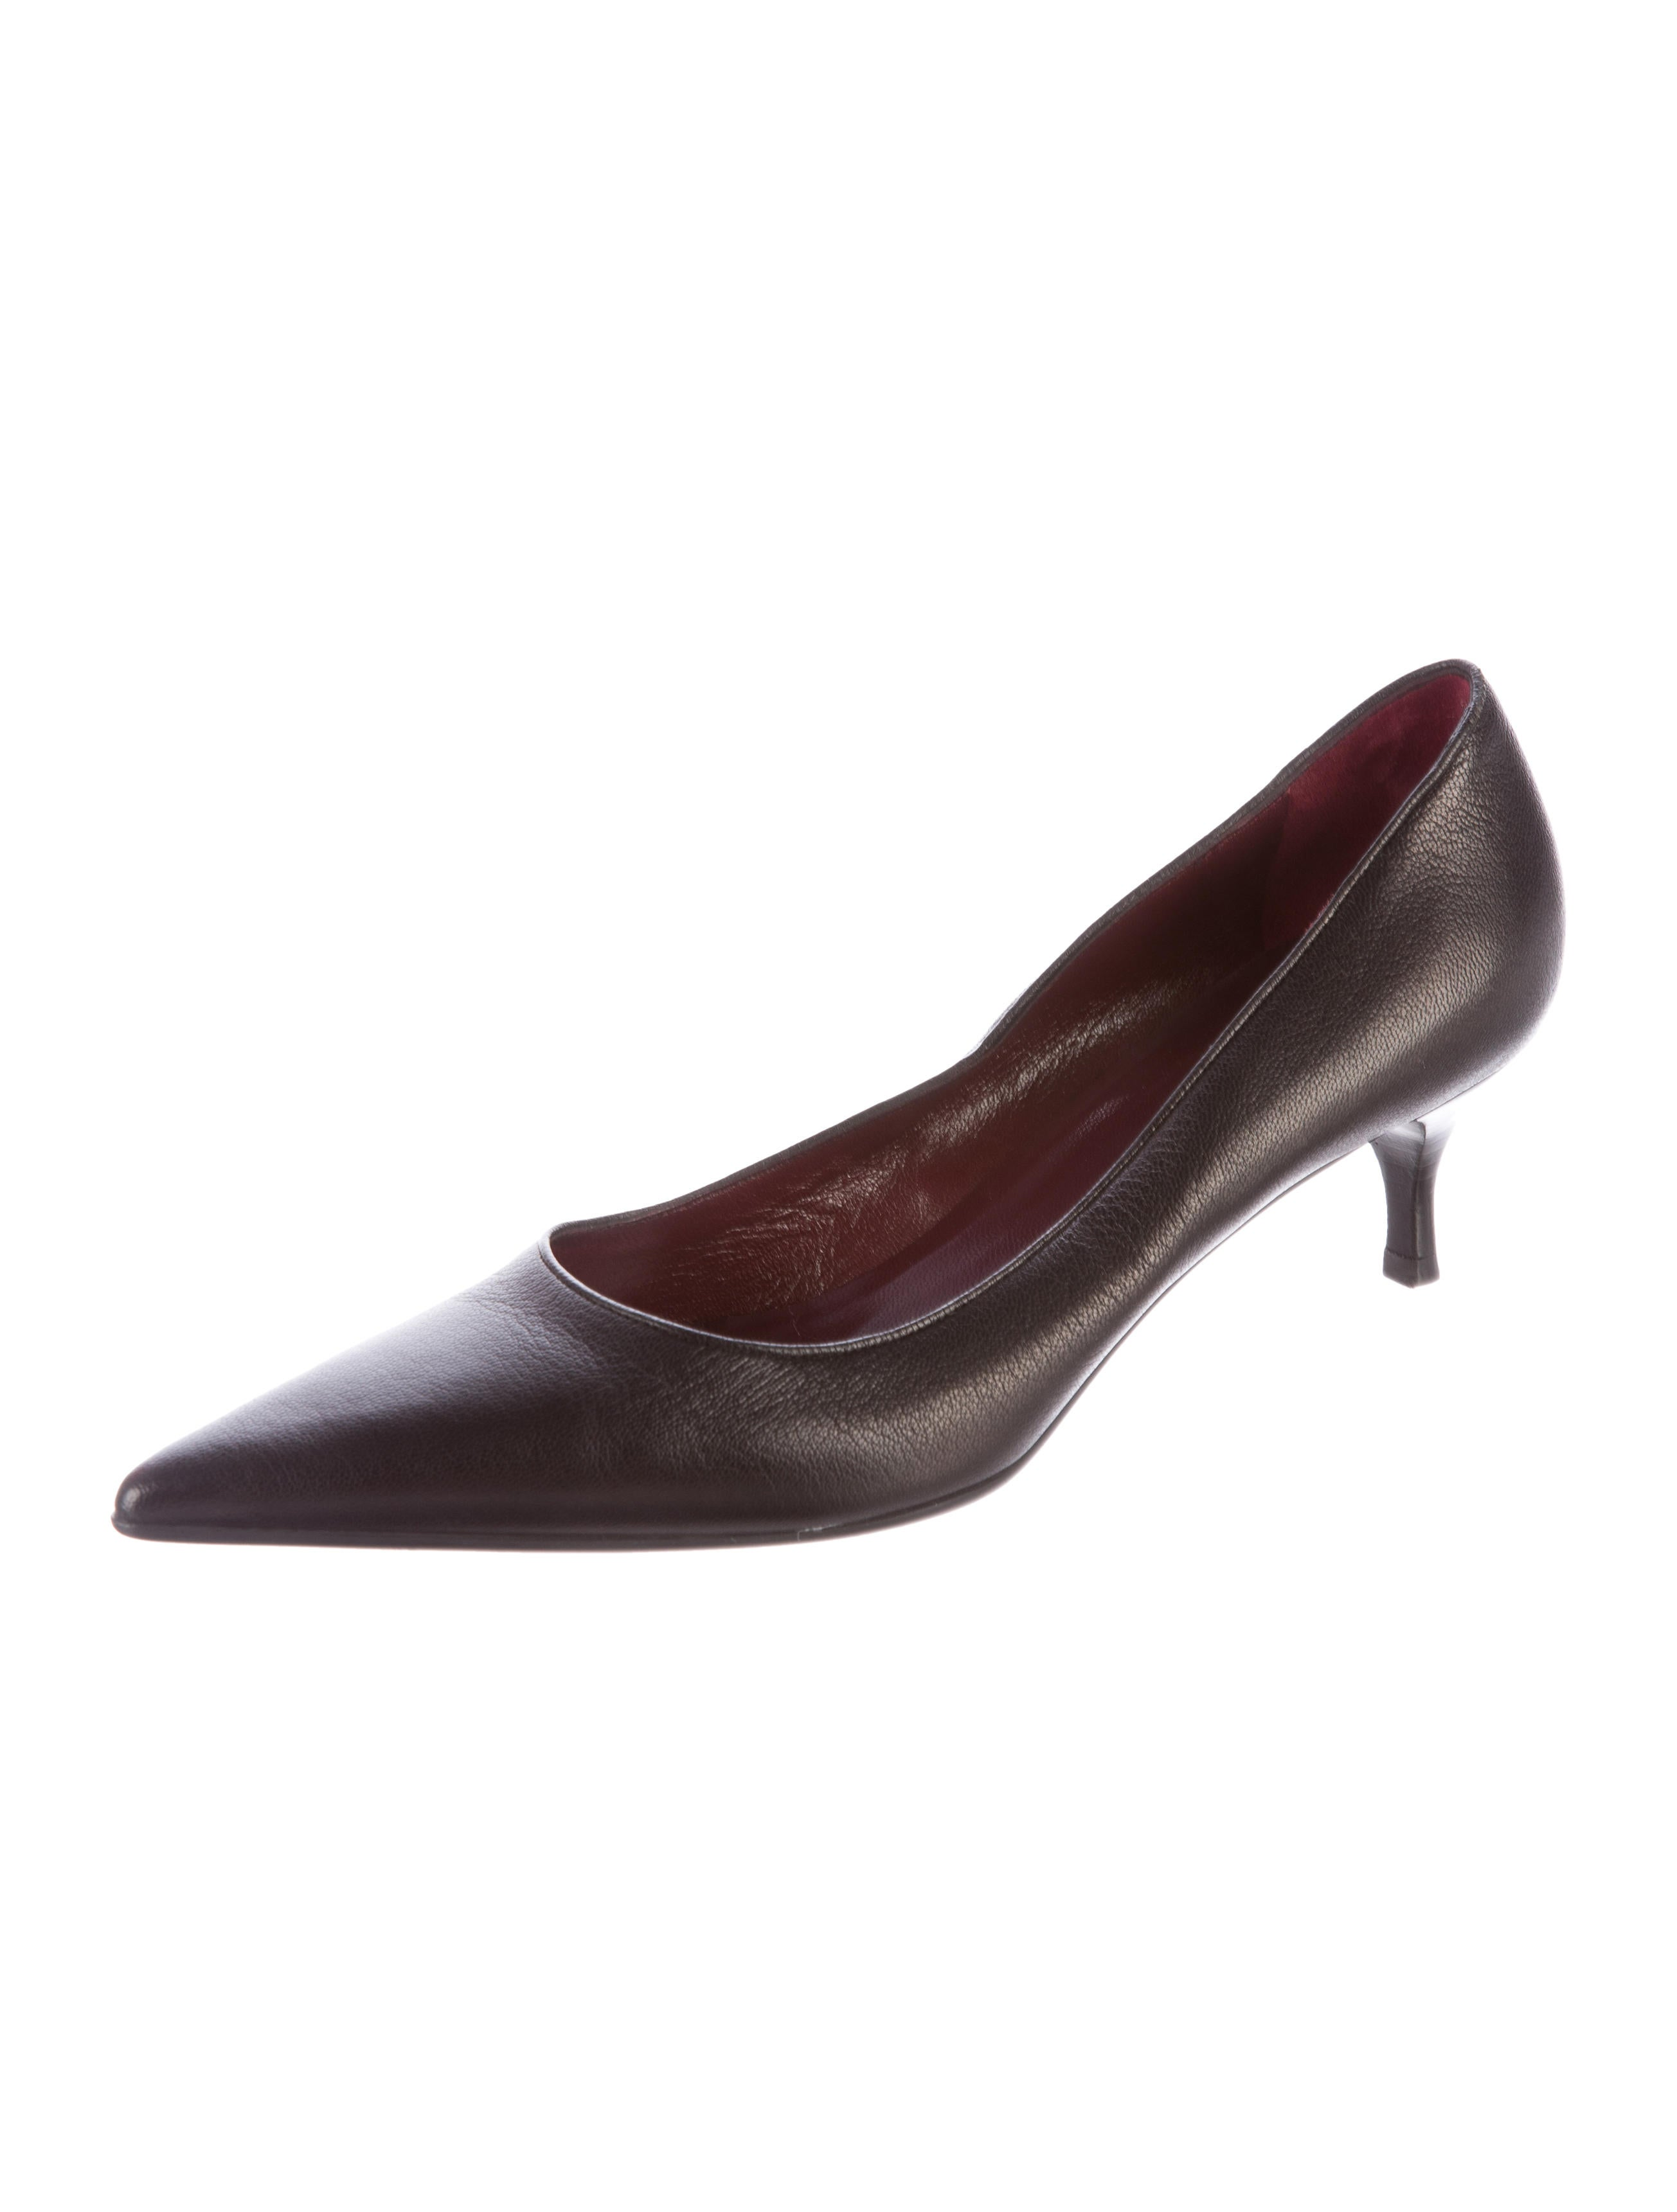 gucci leather pointed toe pumps shoes guc133263 the